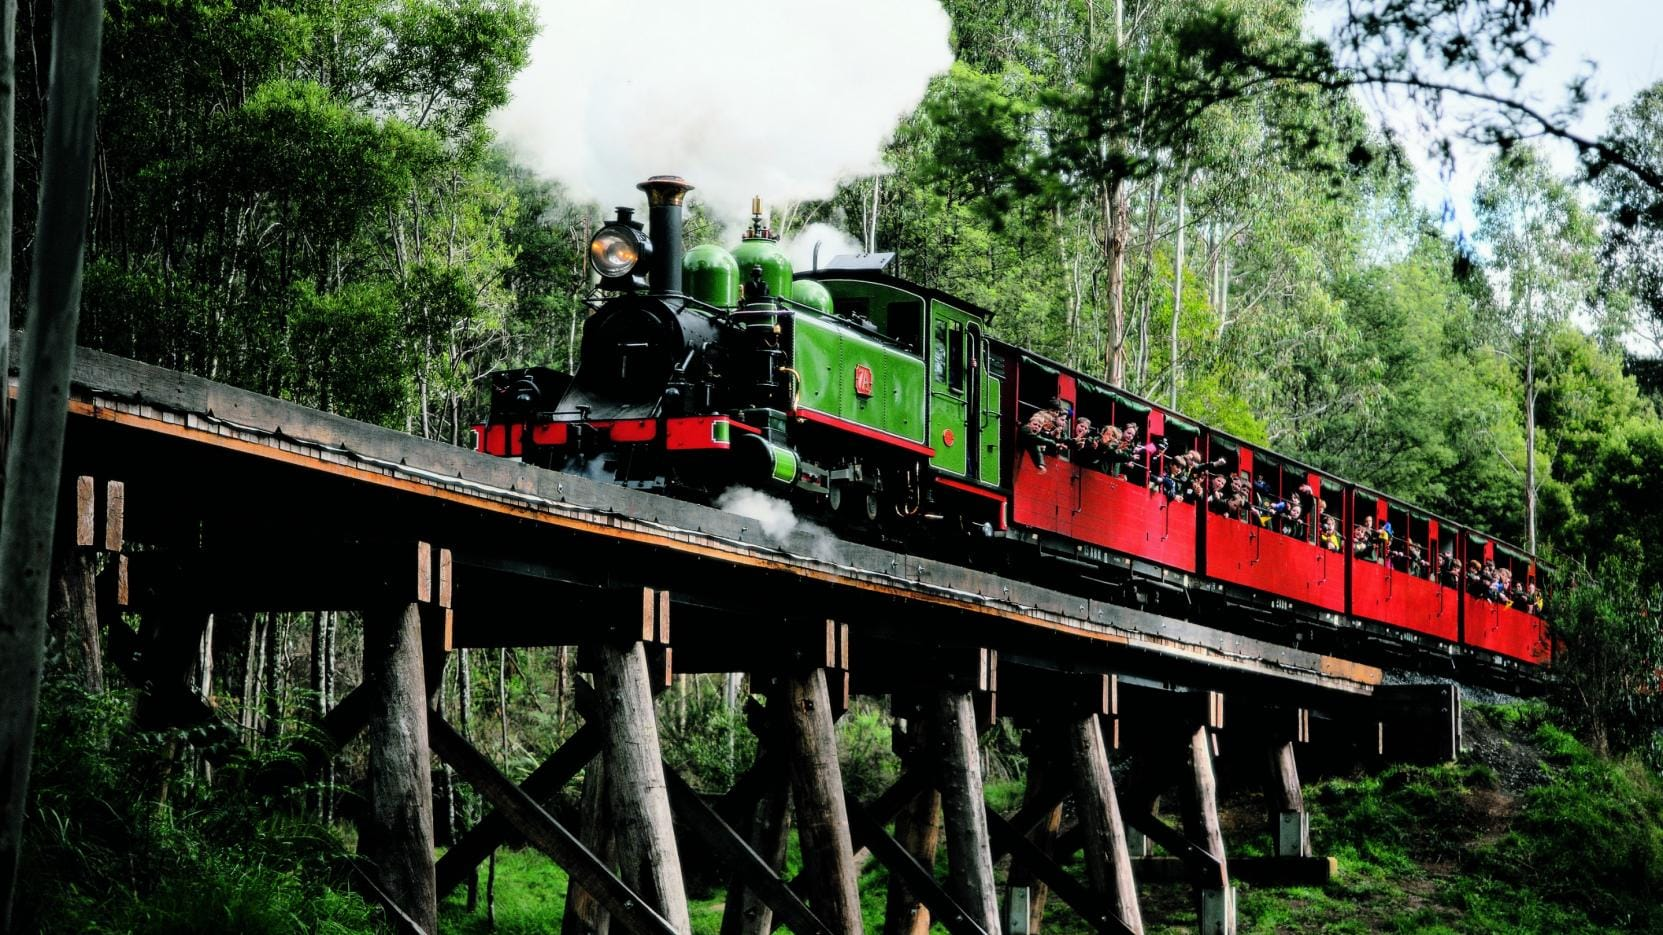 Puffing Billy Railway, Dandenong Ranges, VIC. © Puffing Billy, Dandenong Ranges